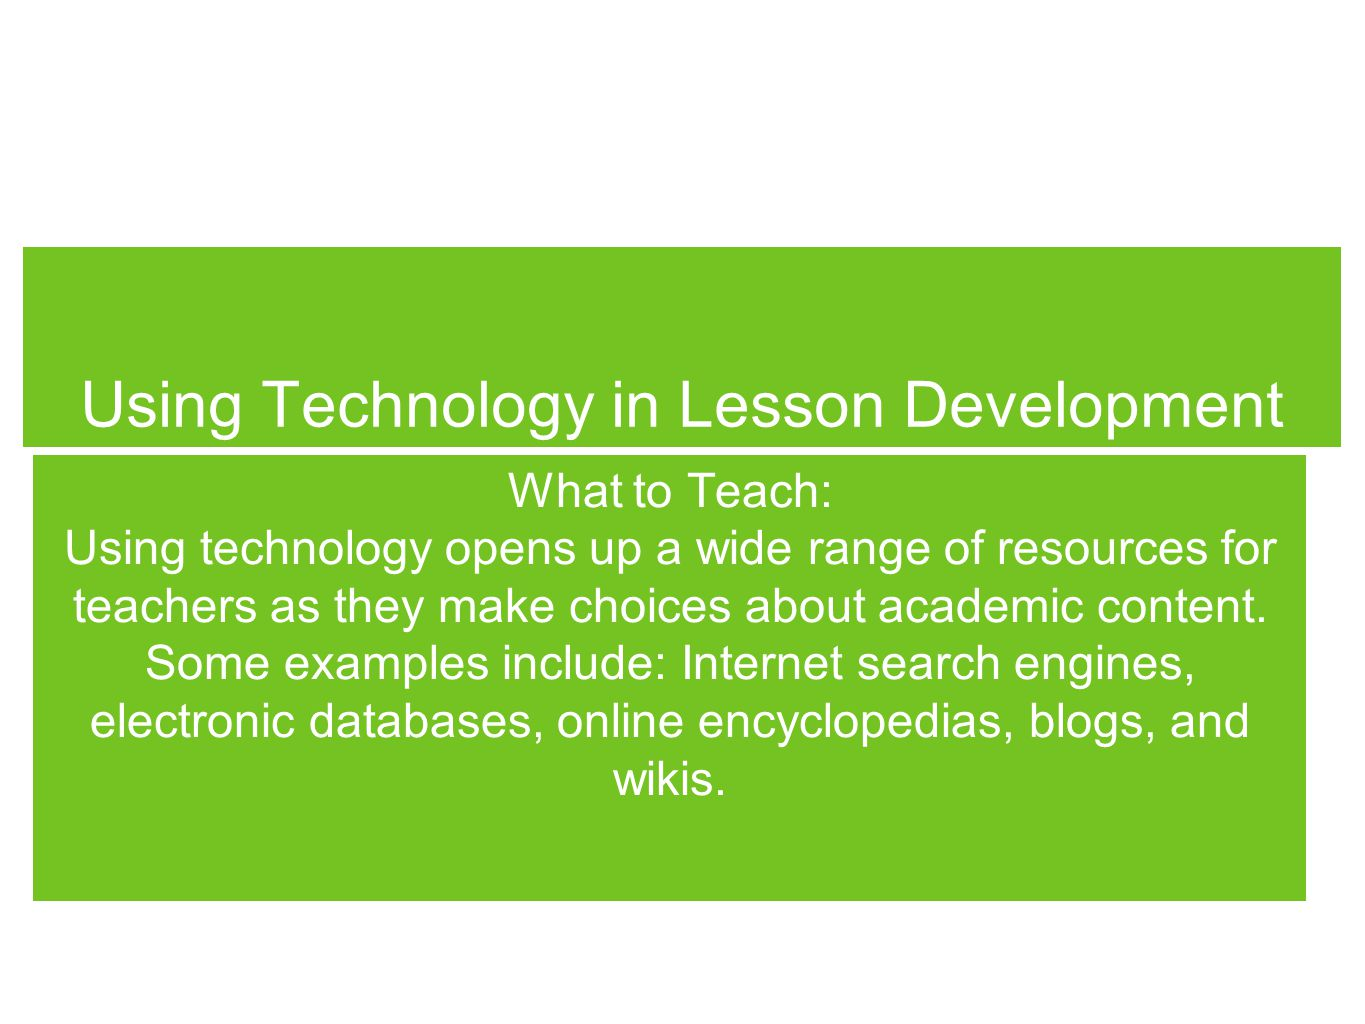 What to Teach: Using technology opens up a wide range of resources for teachers as they make choices about academic content.